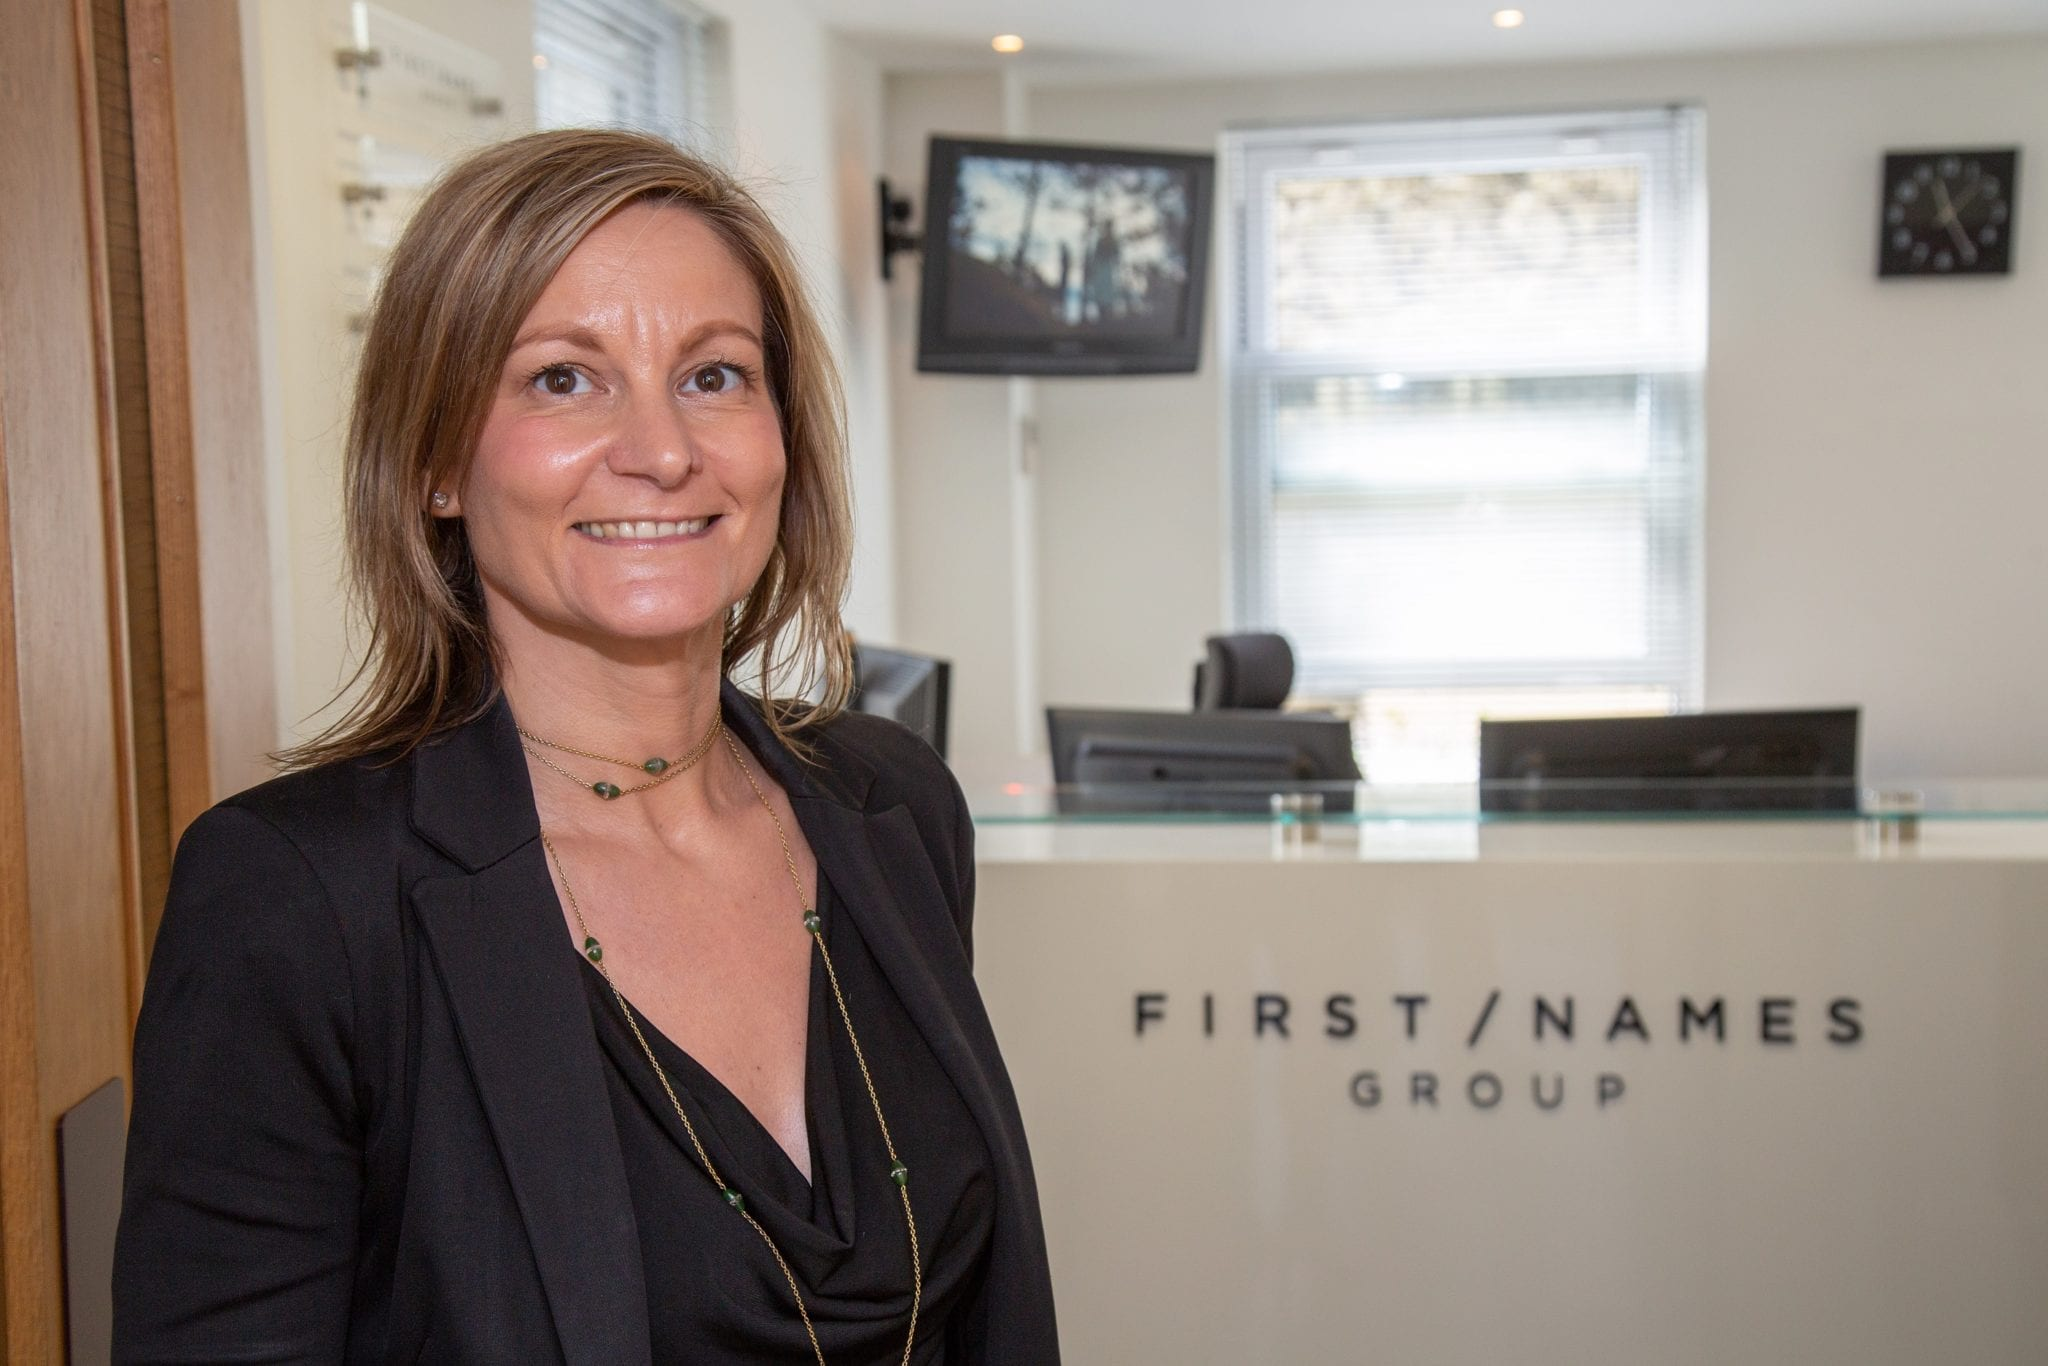 Carola Zoni joins First Names Group's Guernsey office as Client Services Director